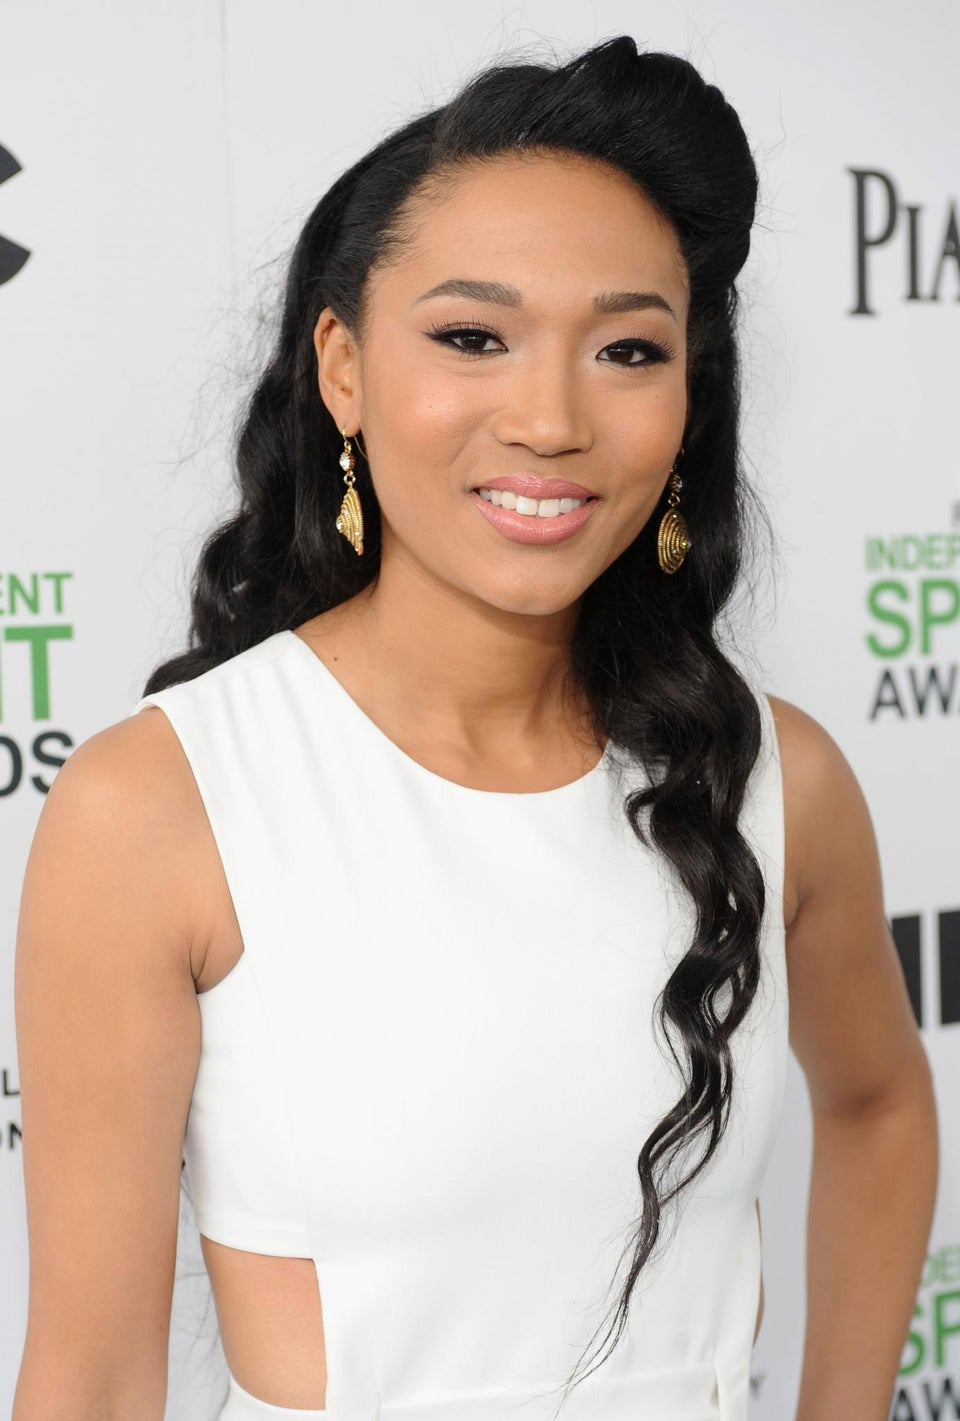 Singer Judith Hill was with Prince During Emergency Plane Landing